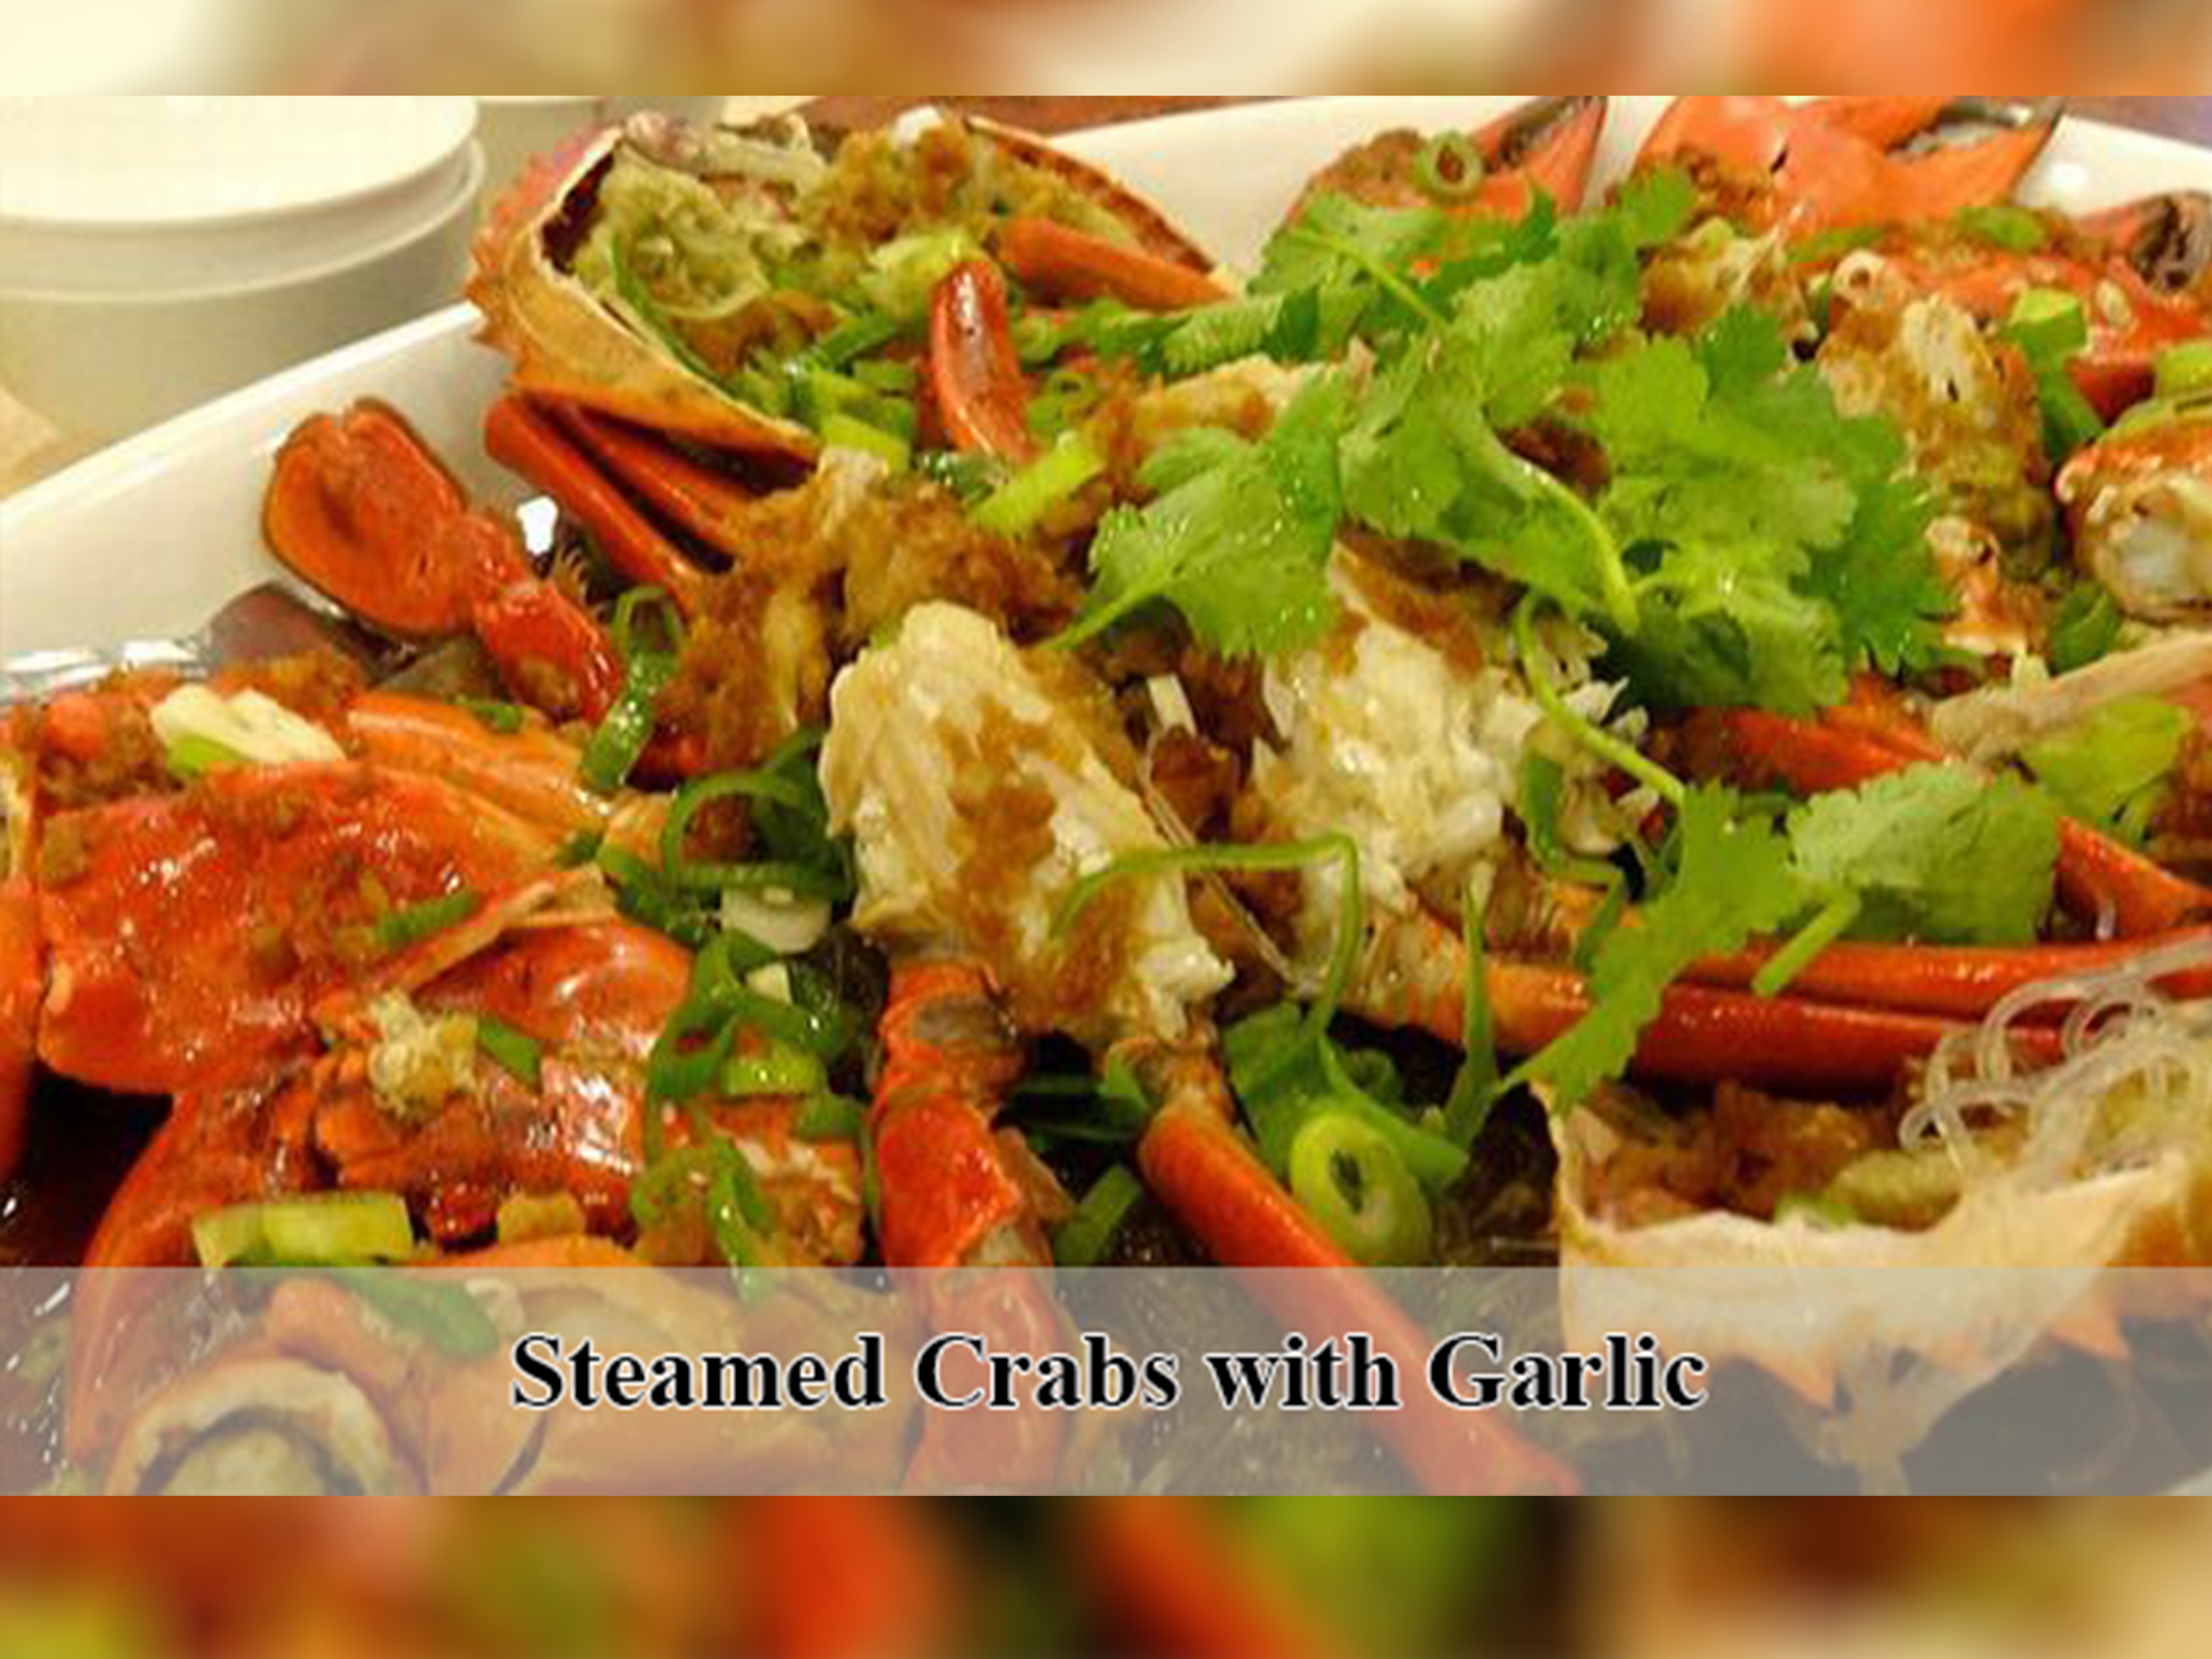 Steamed-Crabs-with-Garlic